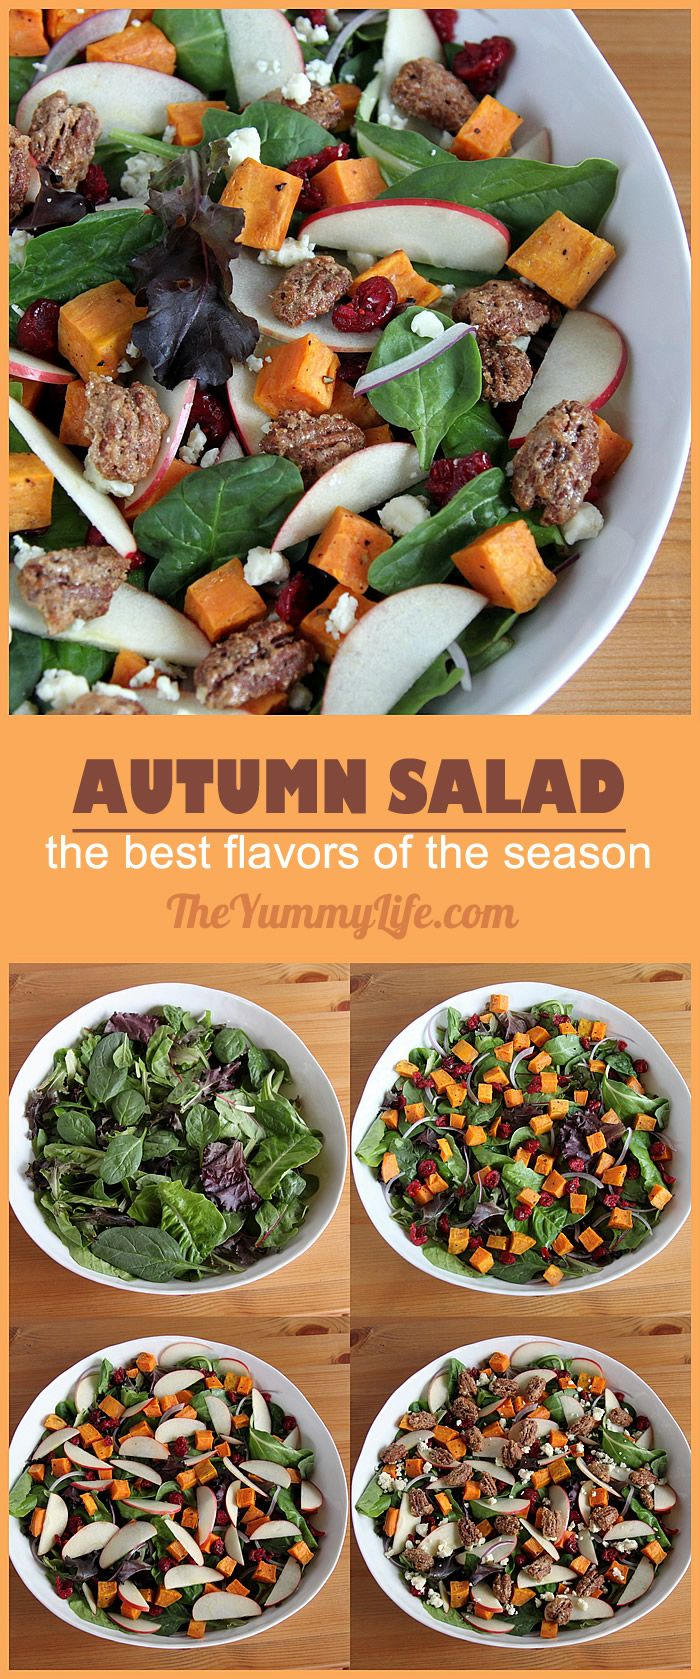 BEST OF AUTUMN SALAD. Roasted sweet potatoes, apples, cranberries, candied pecans and greens make this healthy, tasty combo ideal for Thanksgiving and holiday menus. From TheYummyLife.com